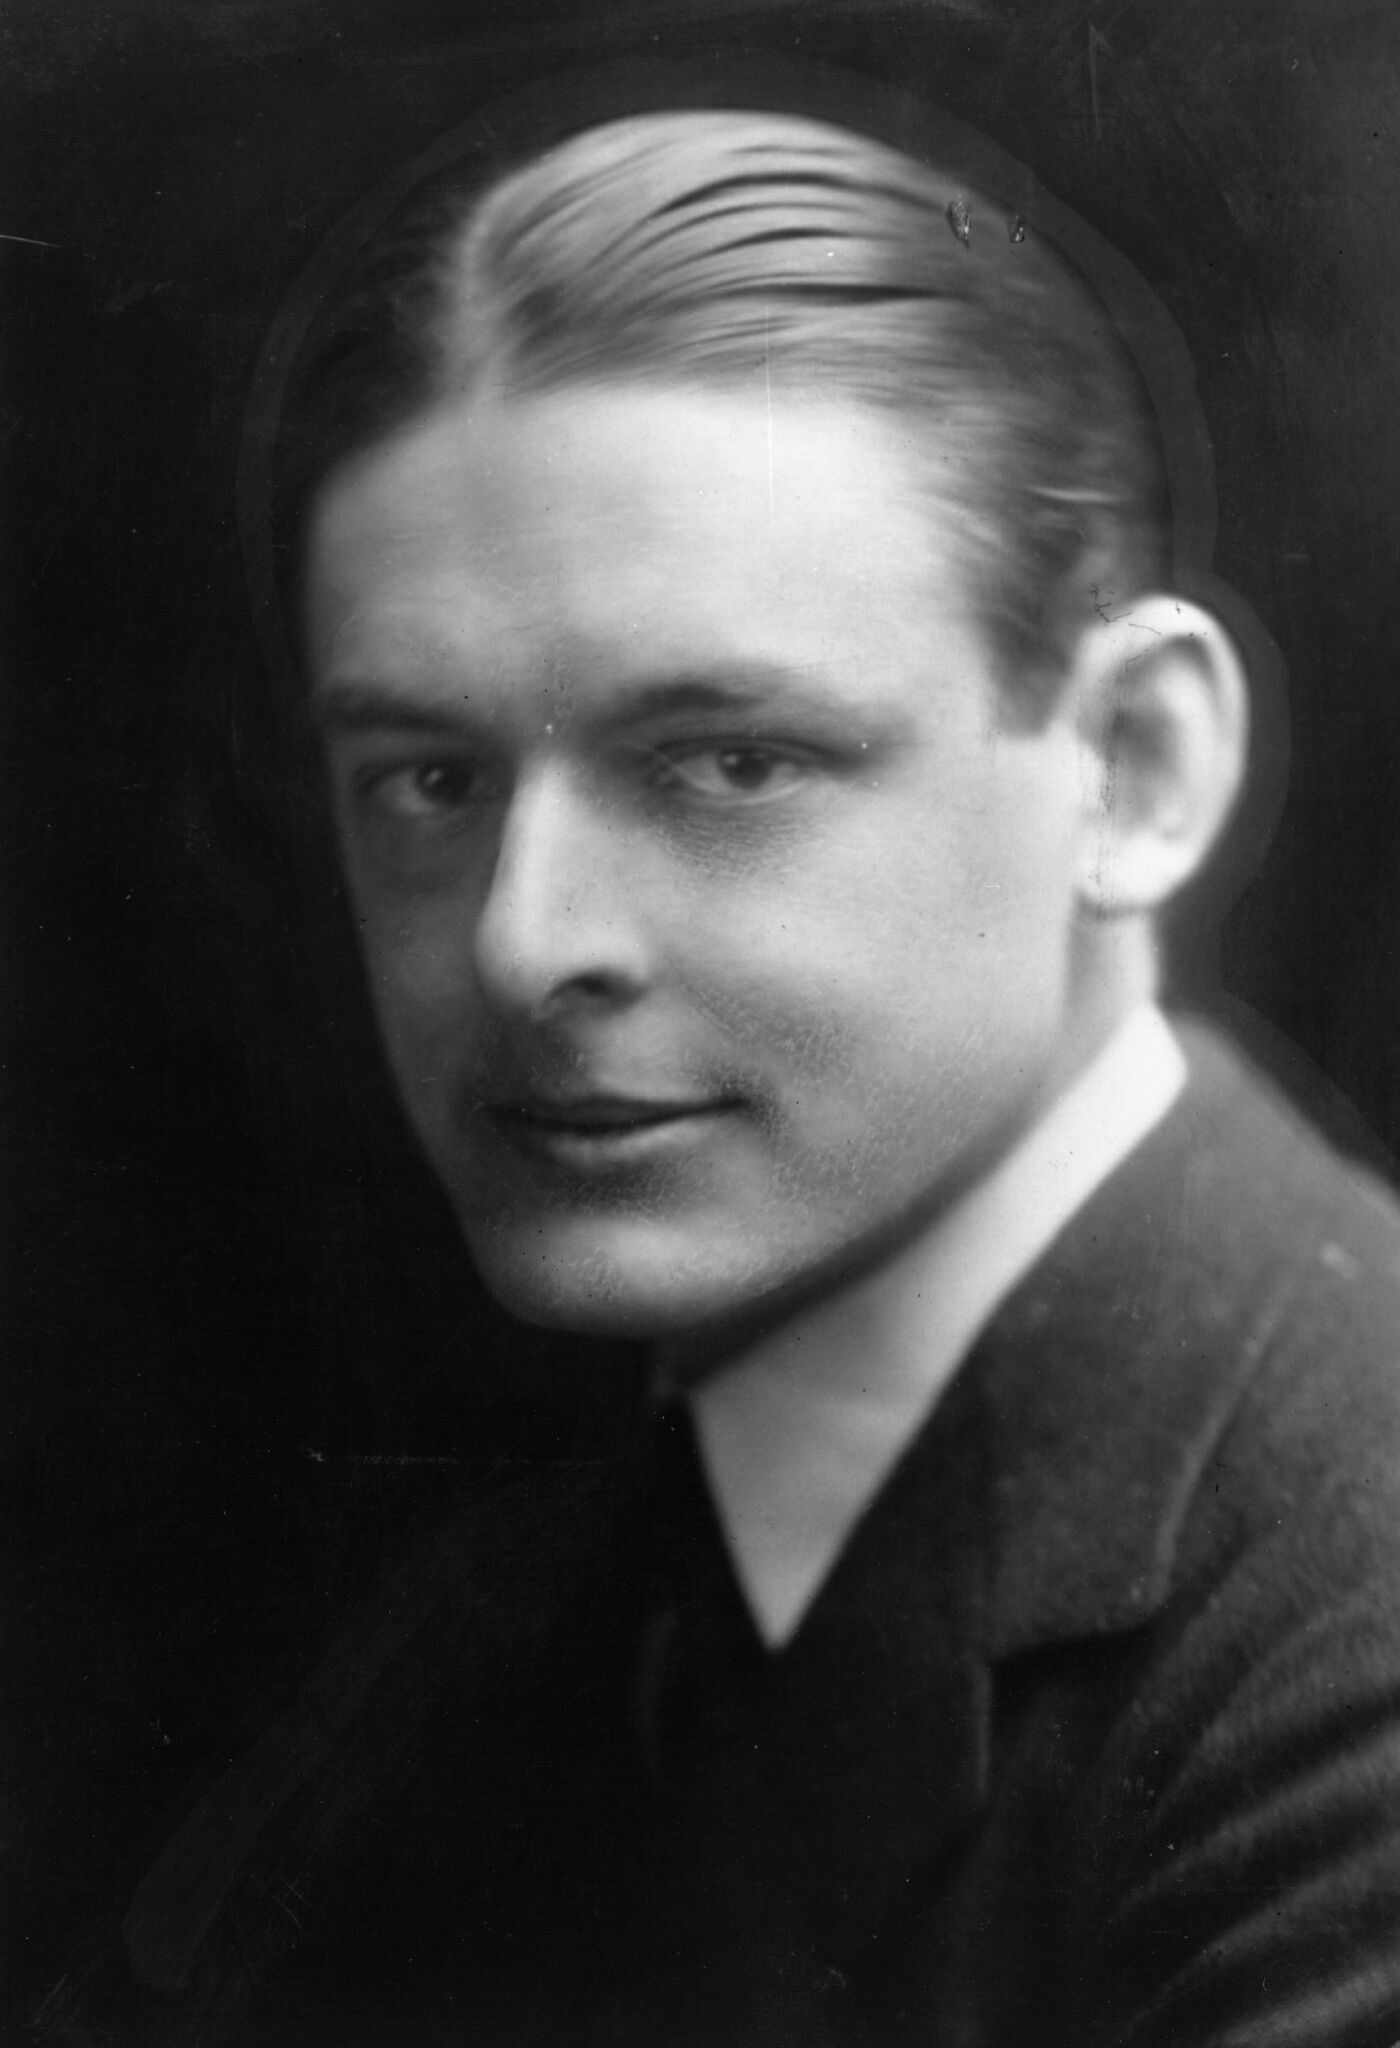 T.S. Eliot (1888 - 1965), winner of the 1948 Nobel Prize in Literature